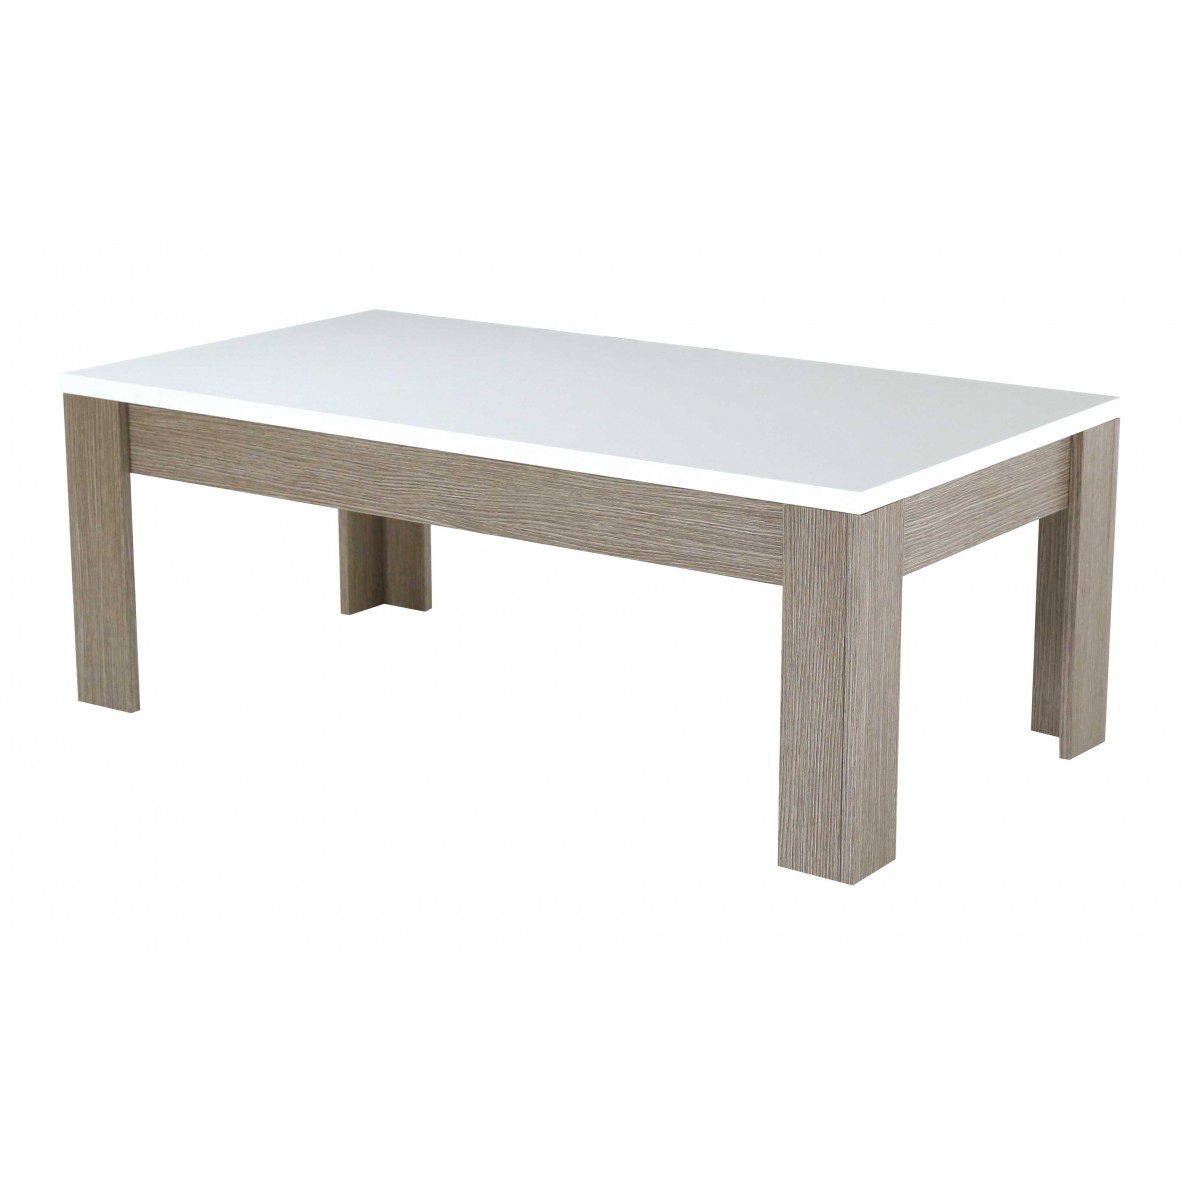 Emejing mobilier laque contemporain table basse ideas for Mobilier contemporain